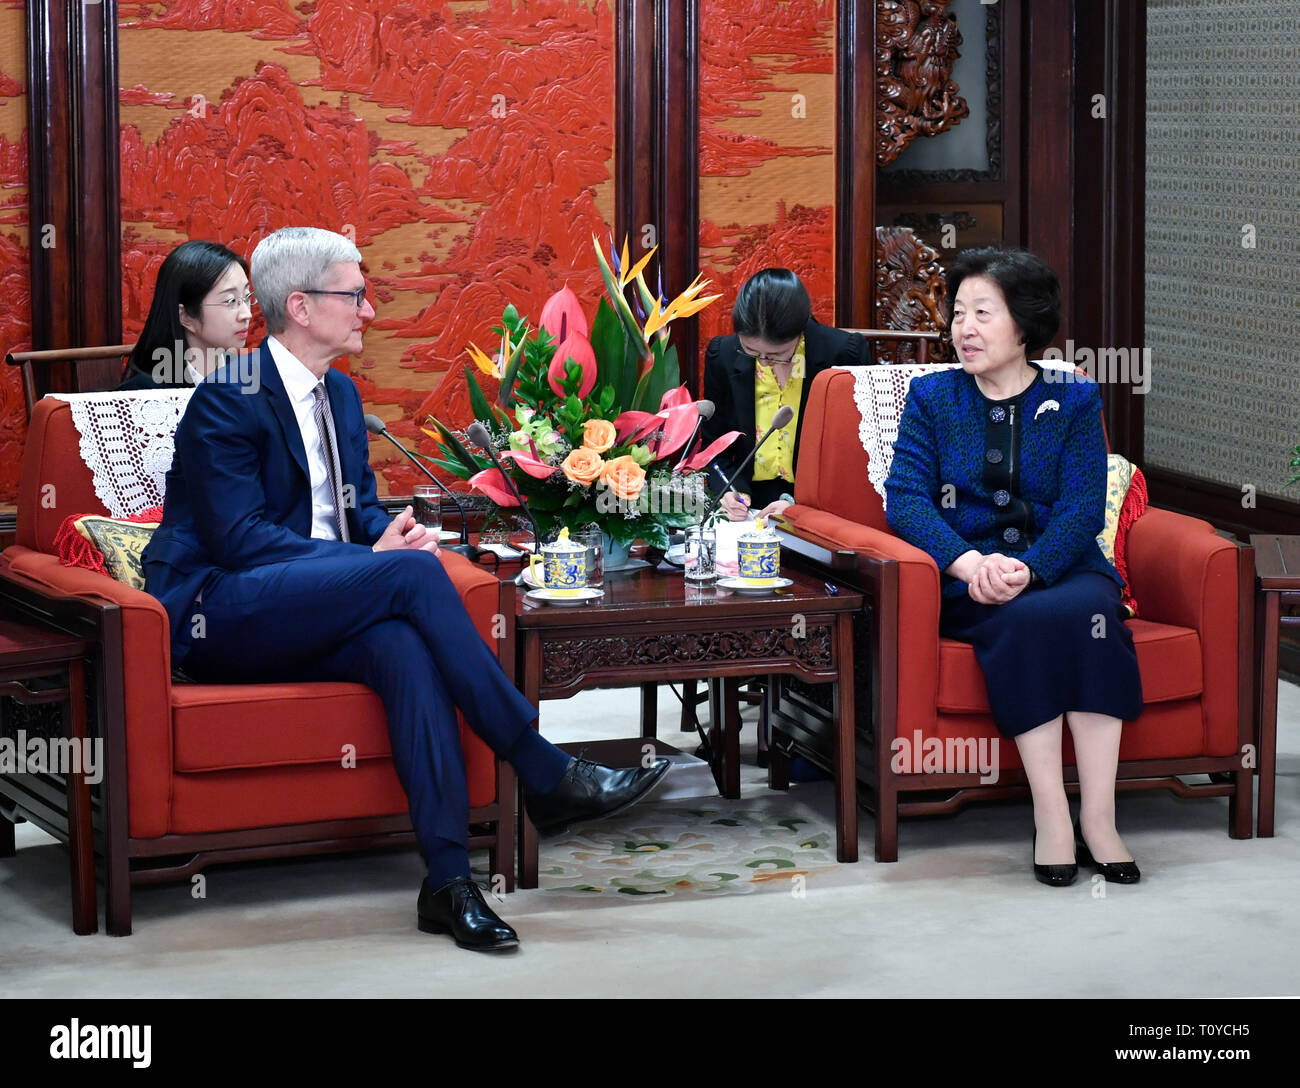 (190322) -- BEIJING, March 22, 2019 (Xinhua) -- Chinese Vice Premier Sun Chunlan meets with Apple CEO Tim Cook in Beijing, capital of China, March 22, 2019. (Xinhua/Yin Bogu) - Stock Image